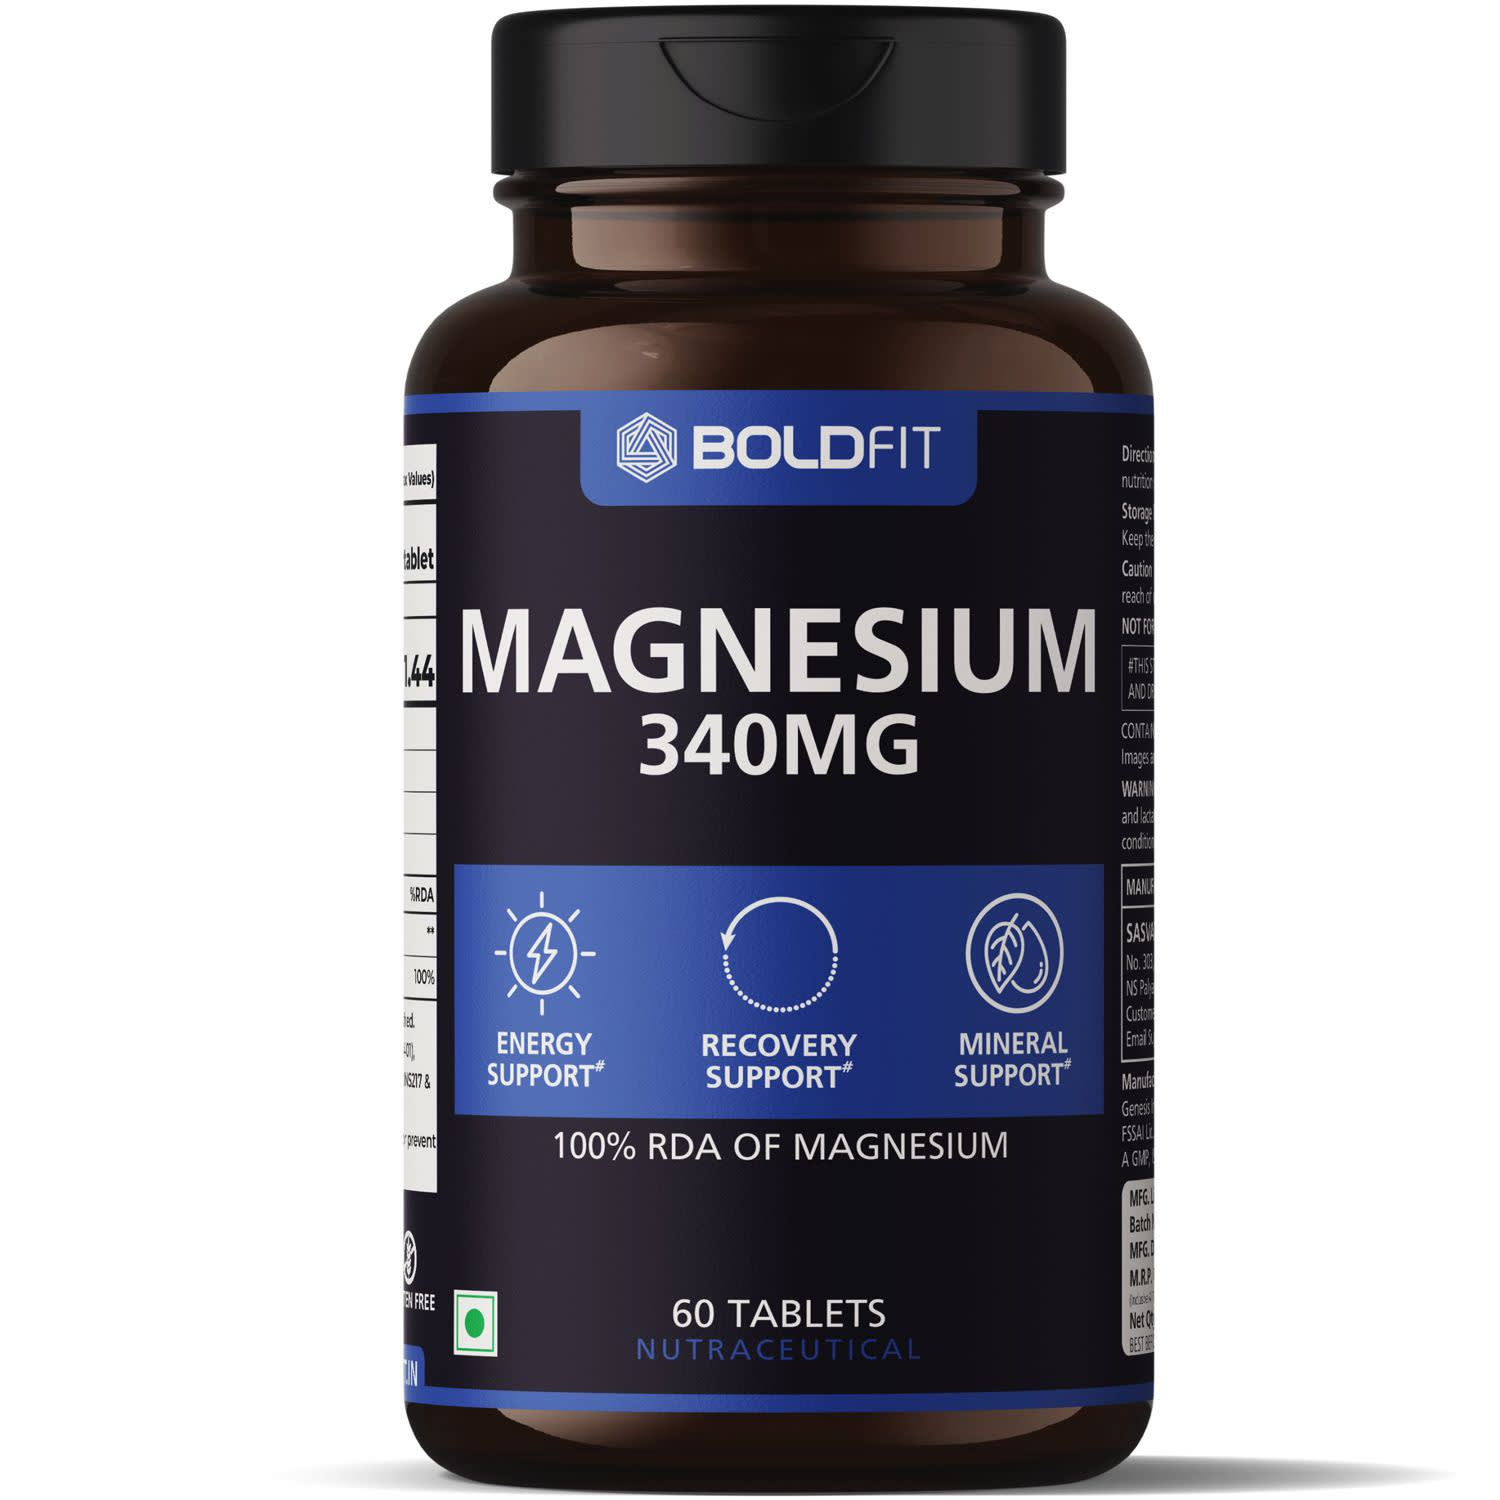 Boldfit Magnesium 340 Mg Supplement, Magnesium Oxide For Recovery Support, Relaxation & Energy Support, 100% RDA Of Magnesium - 60 Vegetarian Tablets